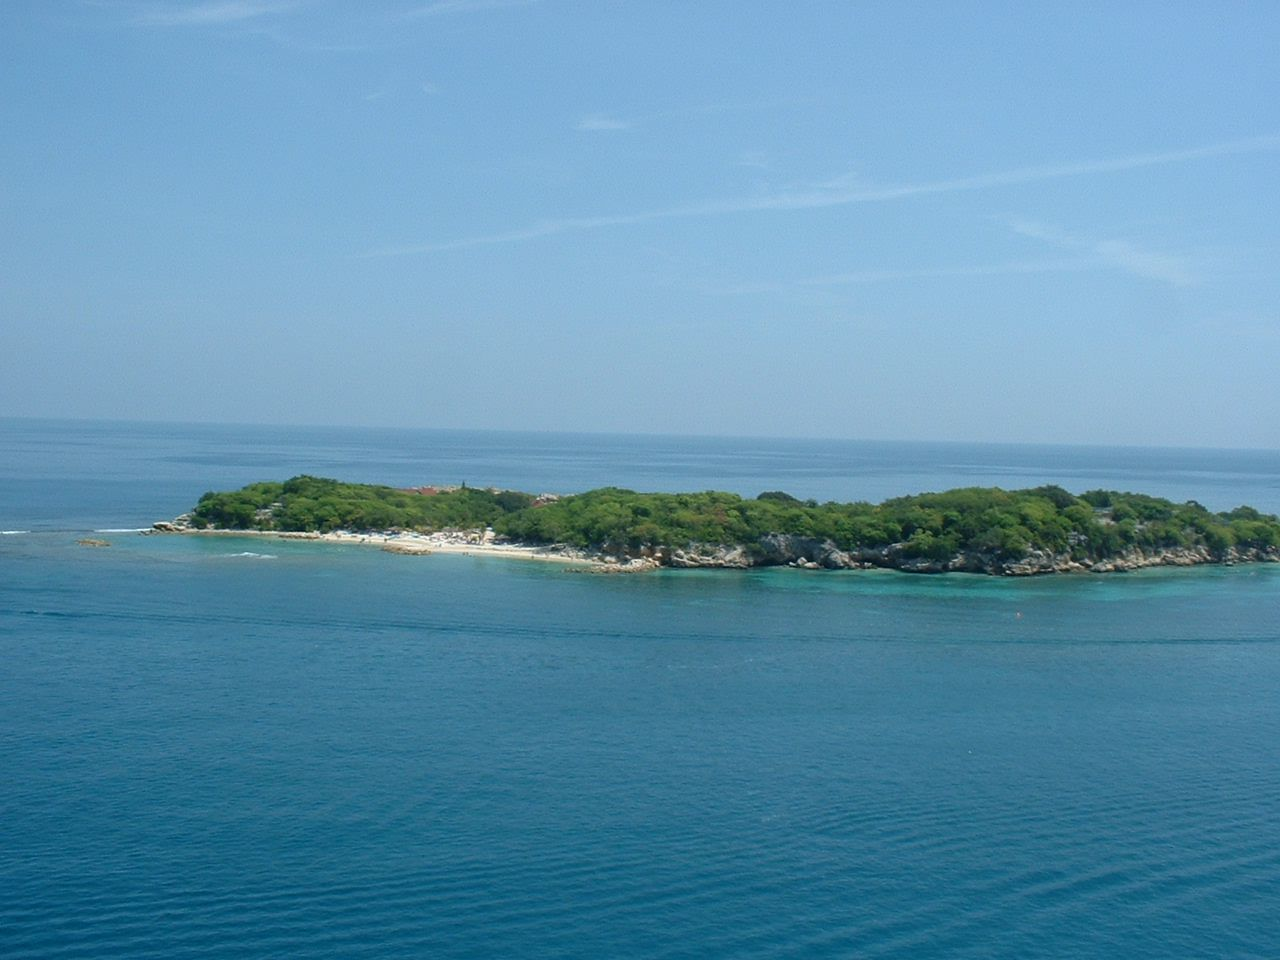 Explore The Beauty Of Caribbean: Labadee - Royal Caribbean's Private Island